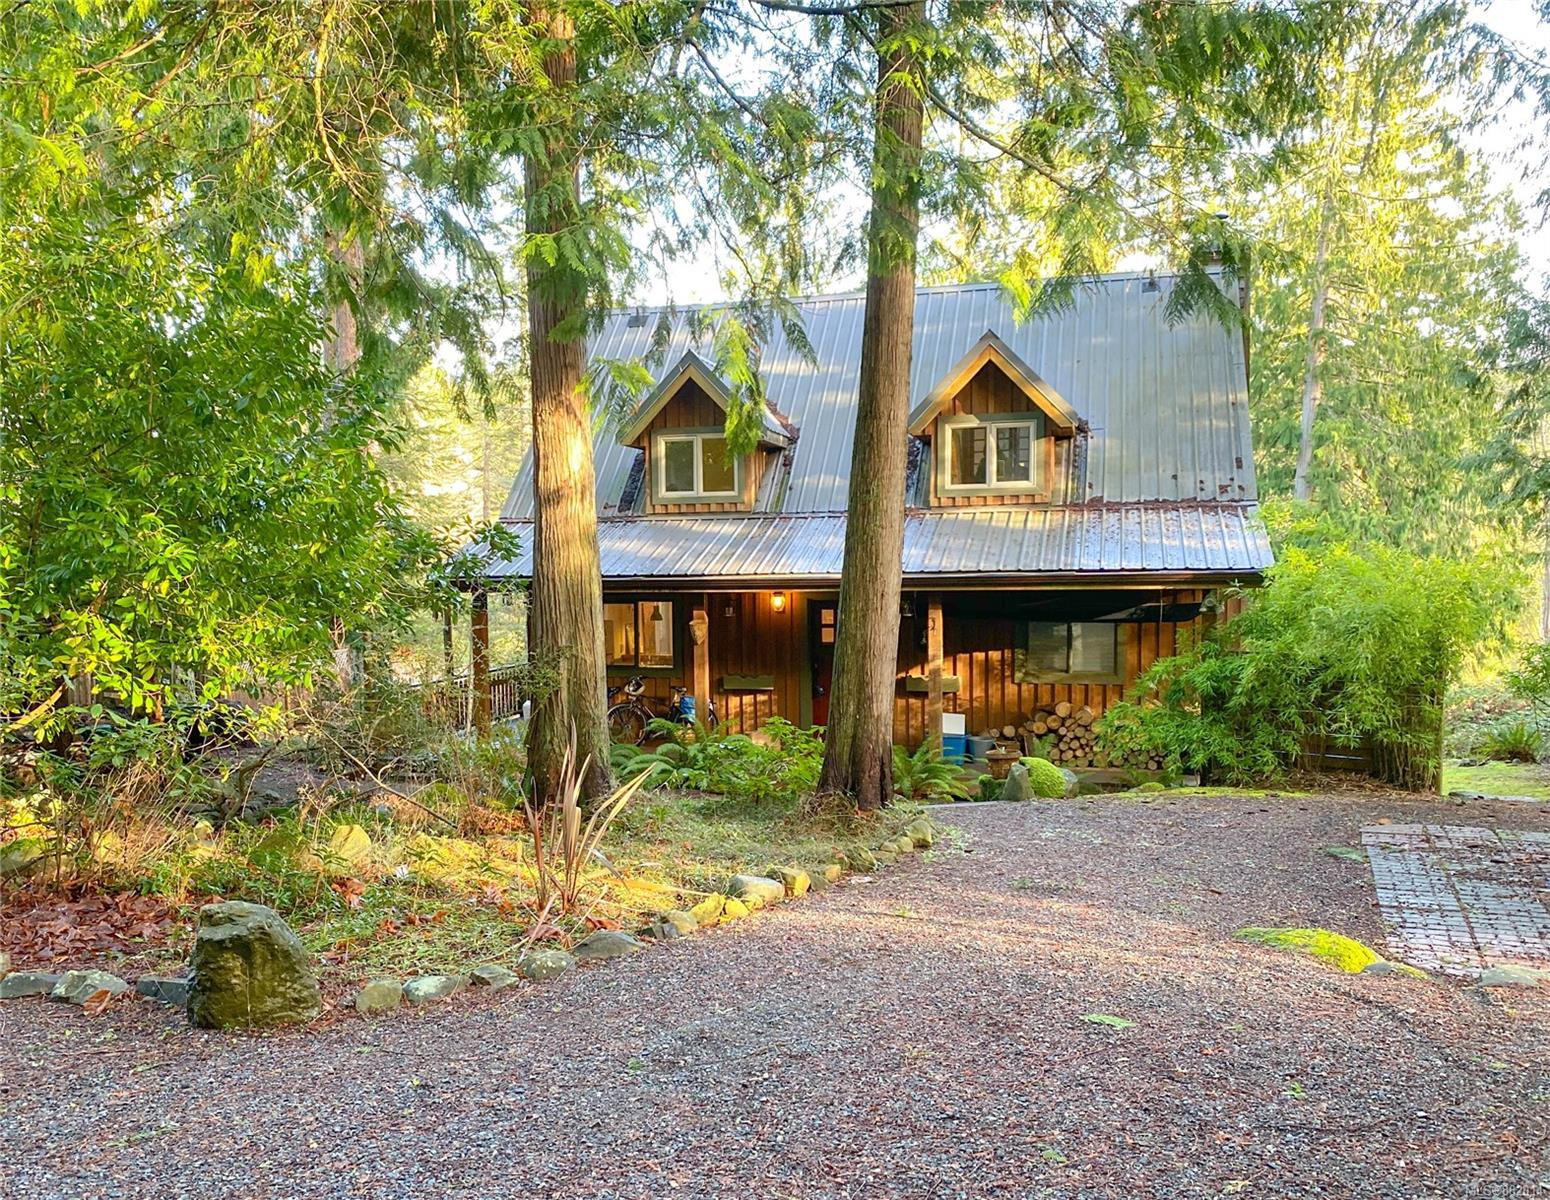 Main Photo: 940 Canso Rd in : Isl Gabriola Island House for sale (Islands)  : MLS®# 862014